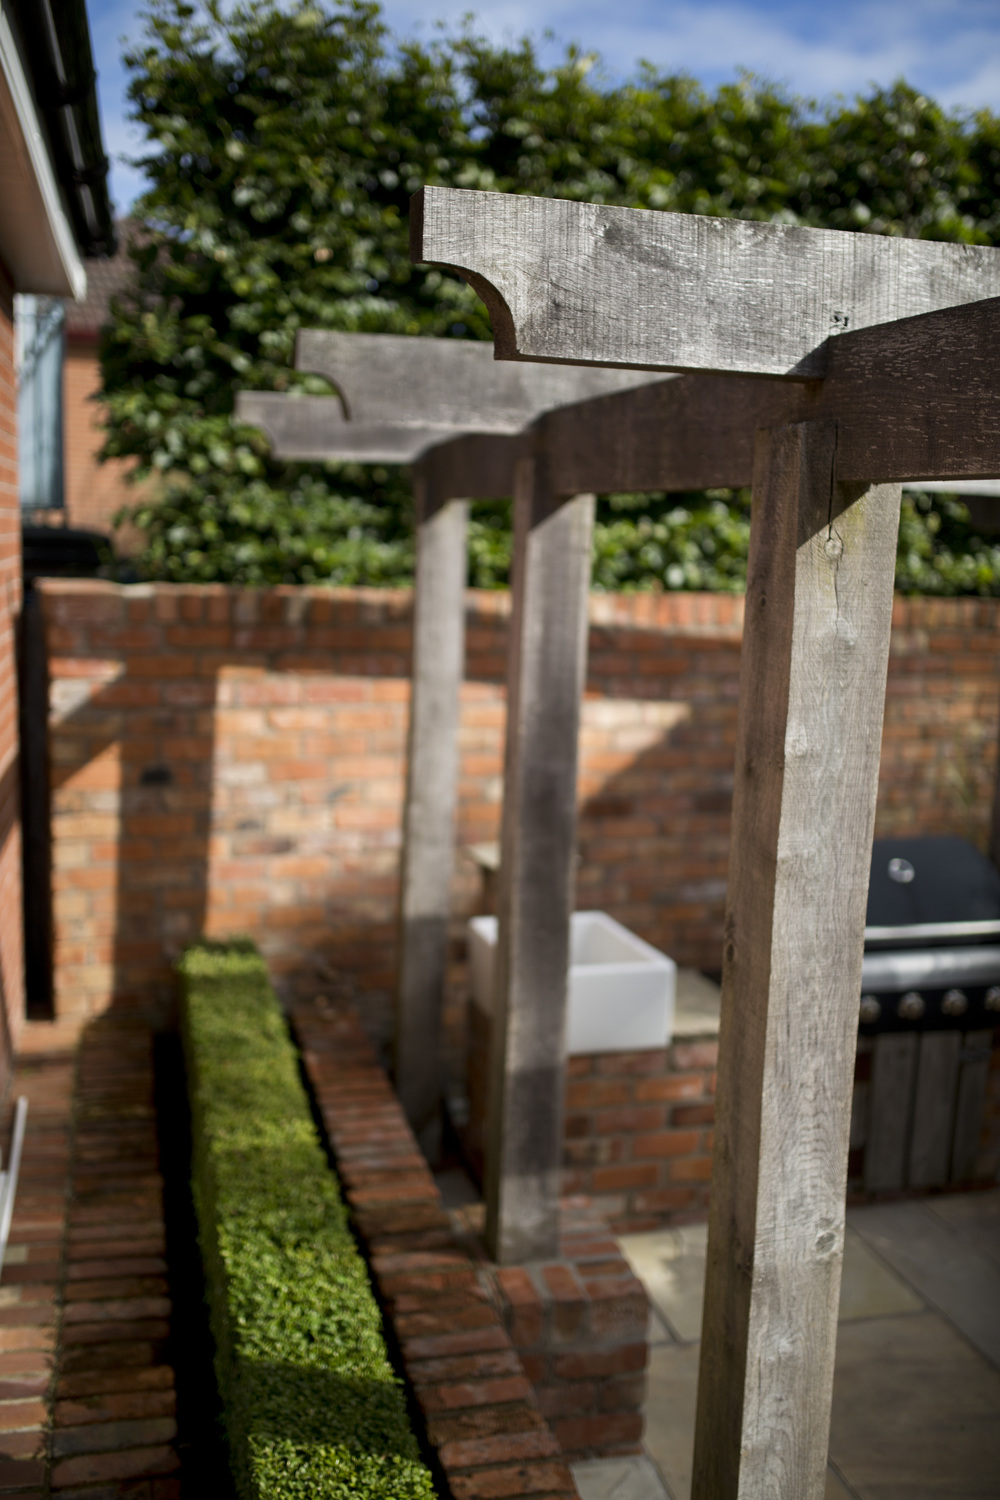 courtyard garden with oak pergola and belfast sink at bbq area